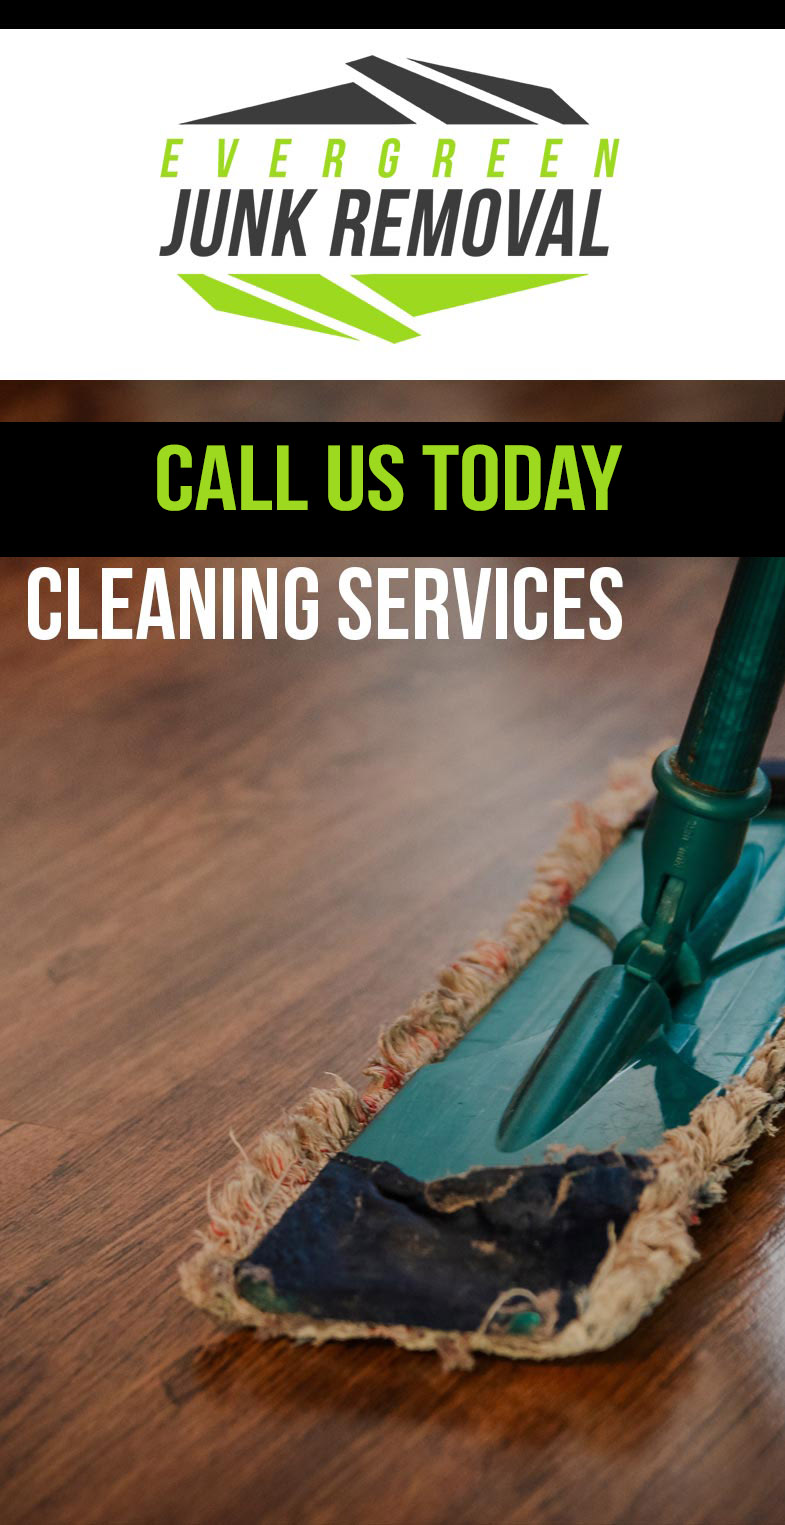 Oakland Park Florida Maid Services